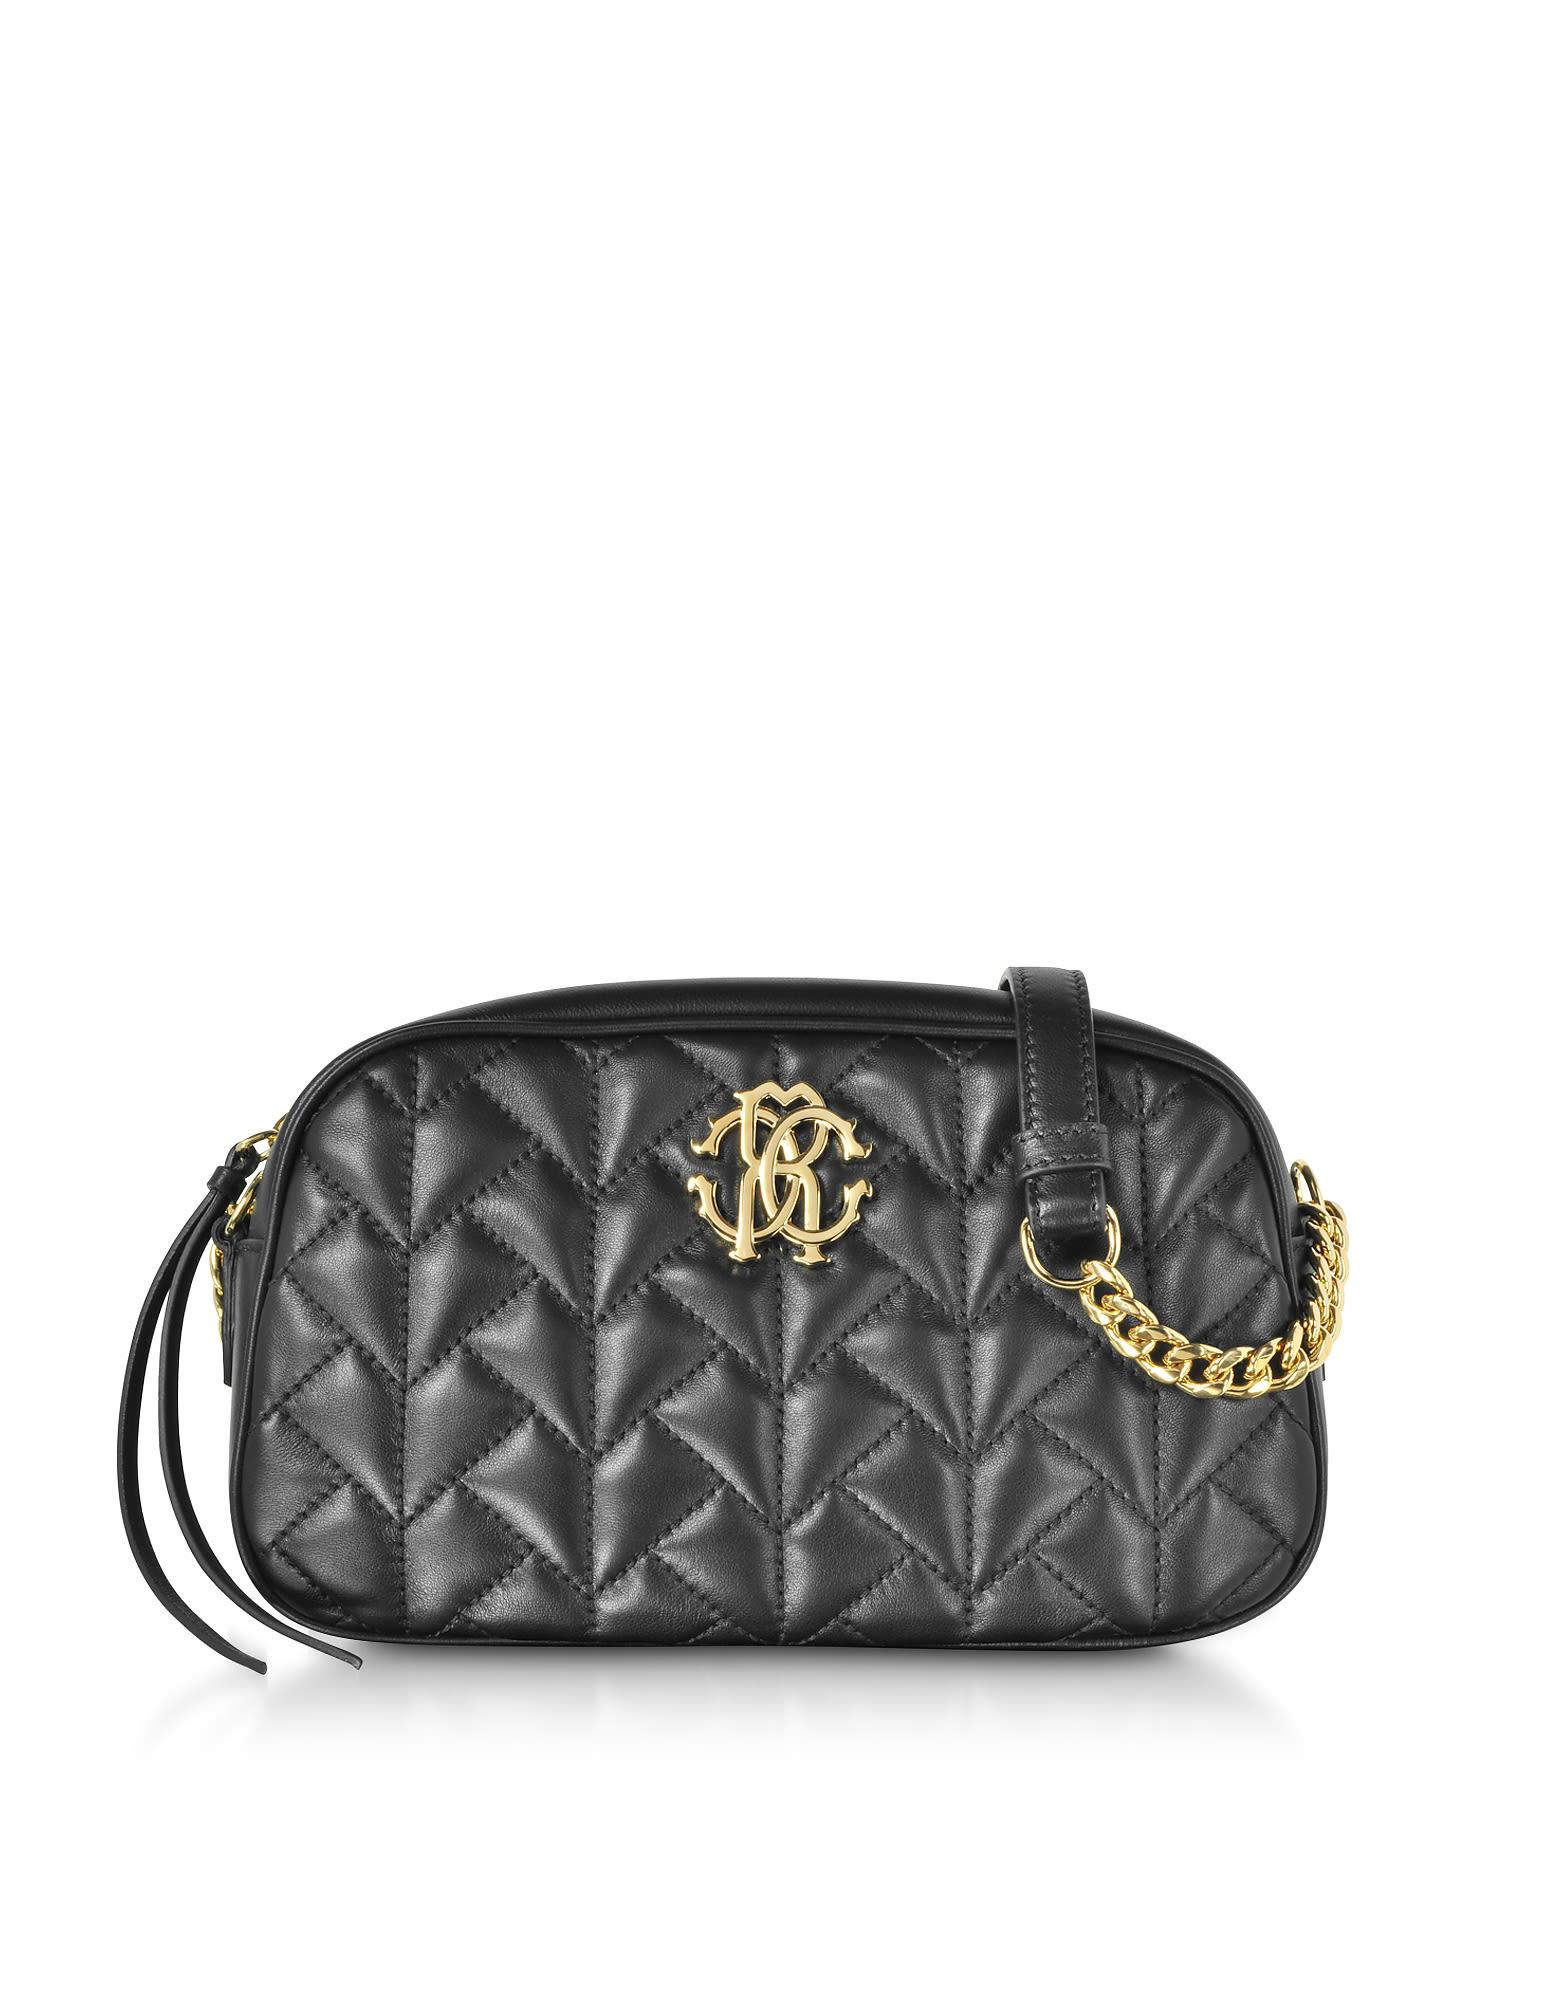 98e0660afcbc Roberto Cavalli Black Quilted Leather Crossbody Bag | ModeSens